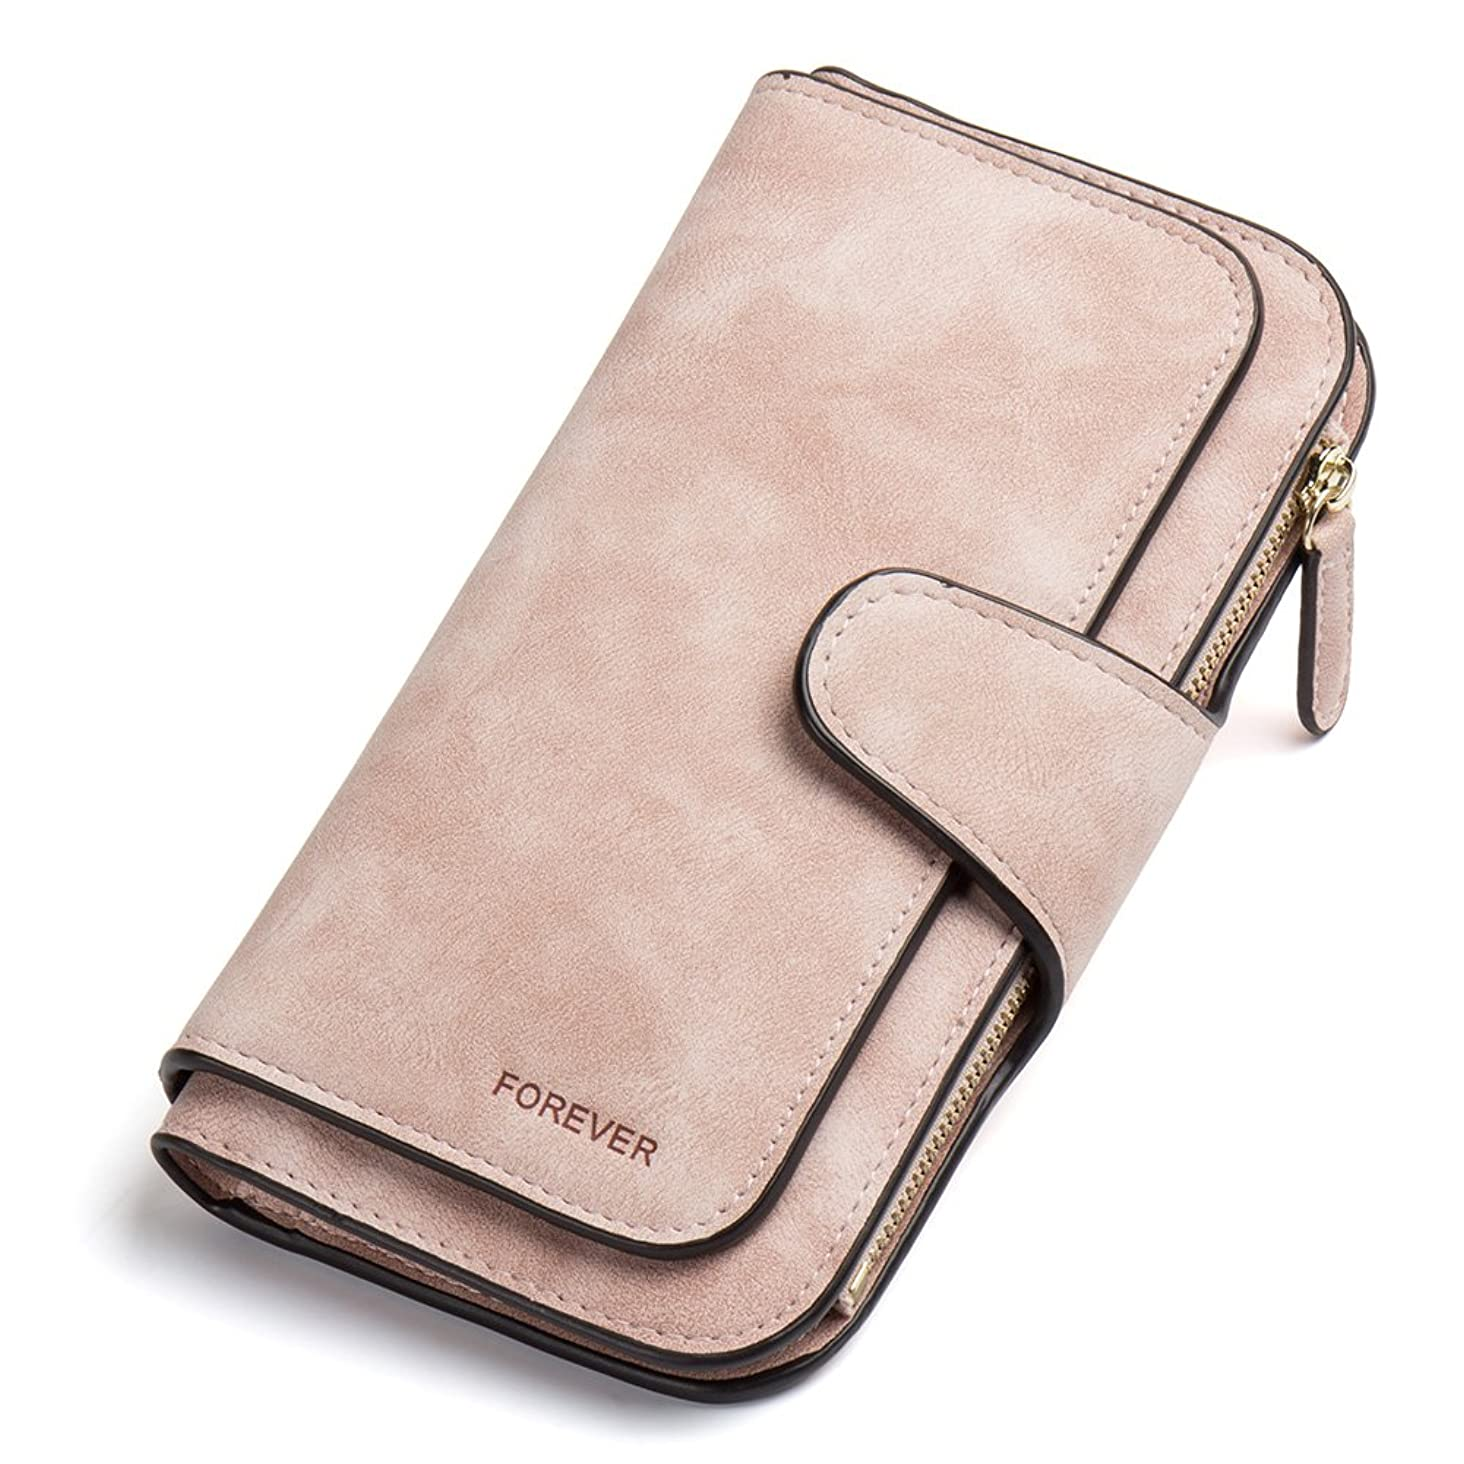 Wallet for Women Leather Designer Bifold Long Ladies Credit Card Holder Organizer Ladies Clutch